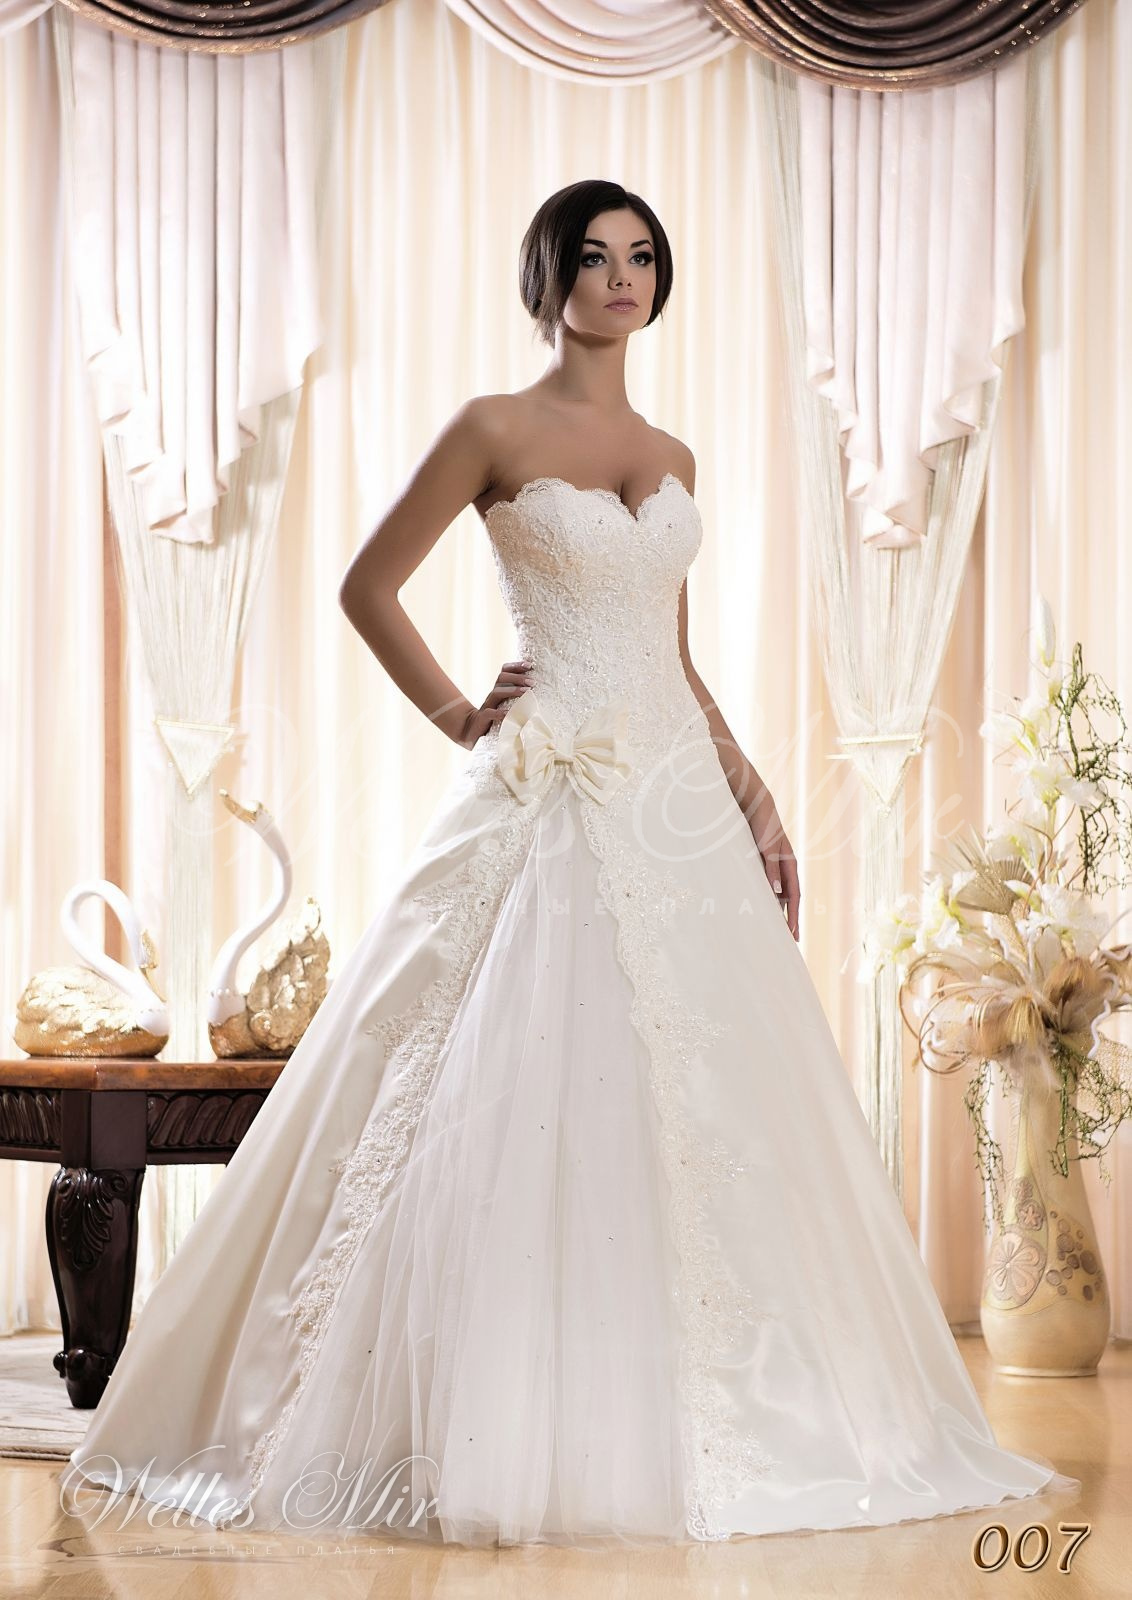 Wedding dresses 007